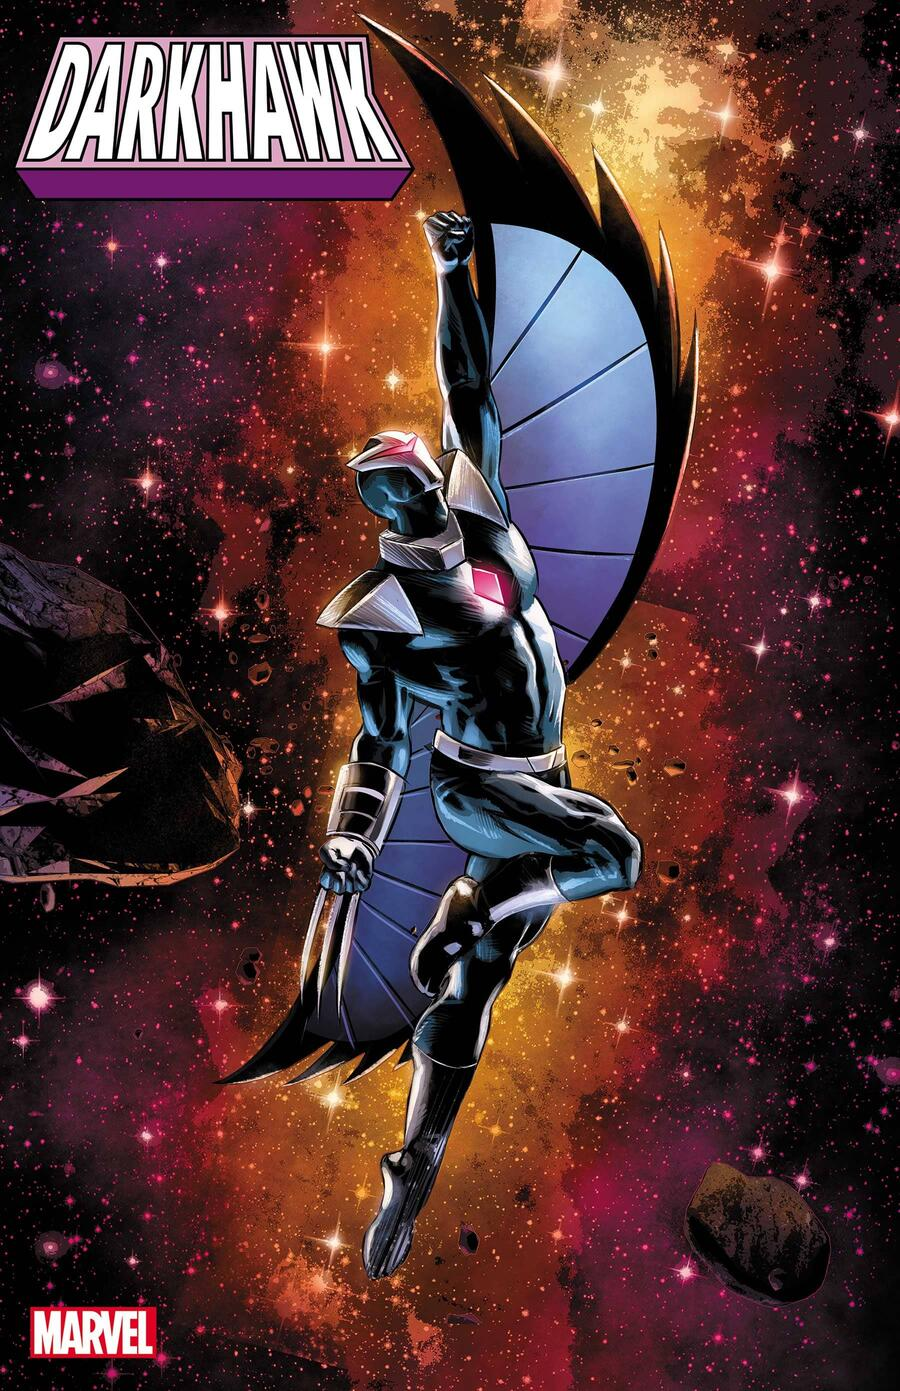 DARKHAWK #1 variant cover by Mike Deodato